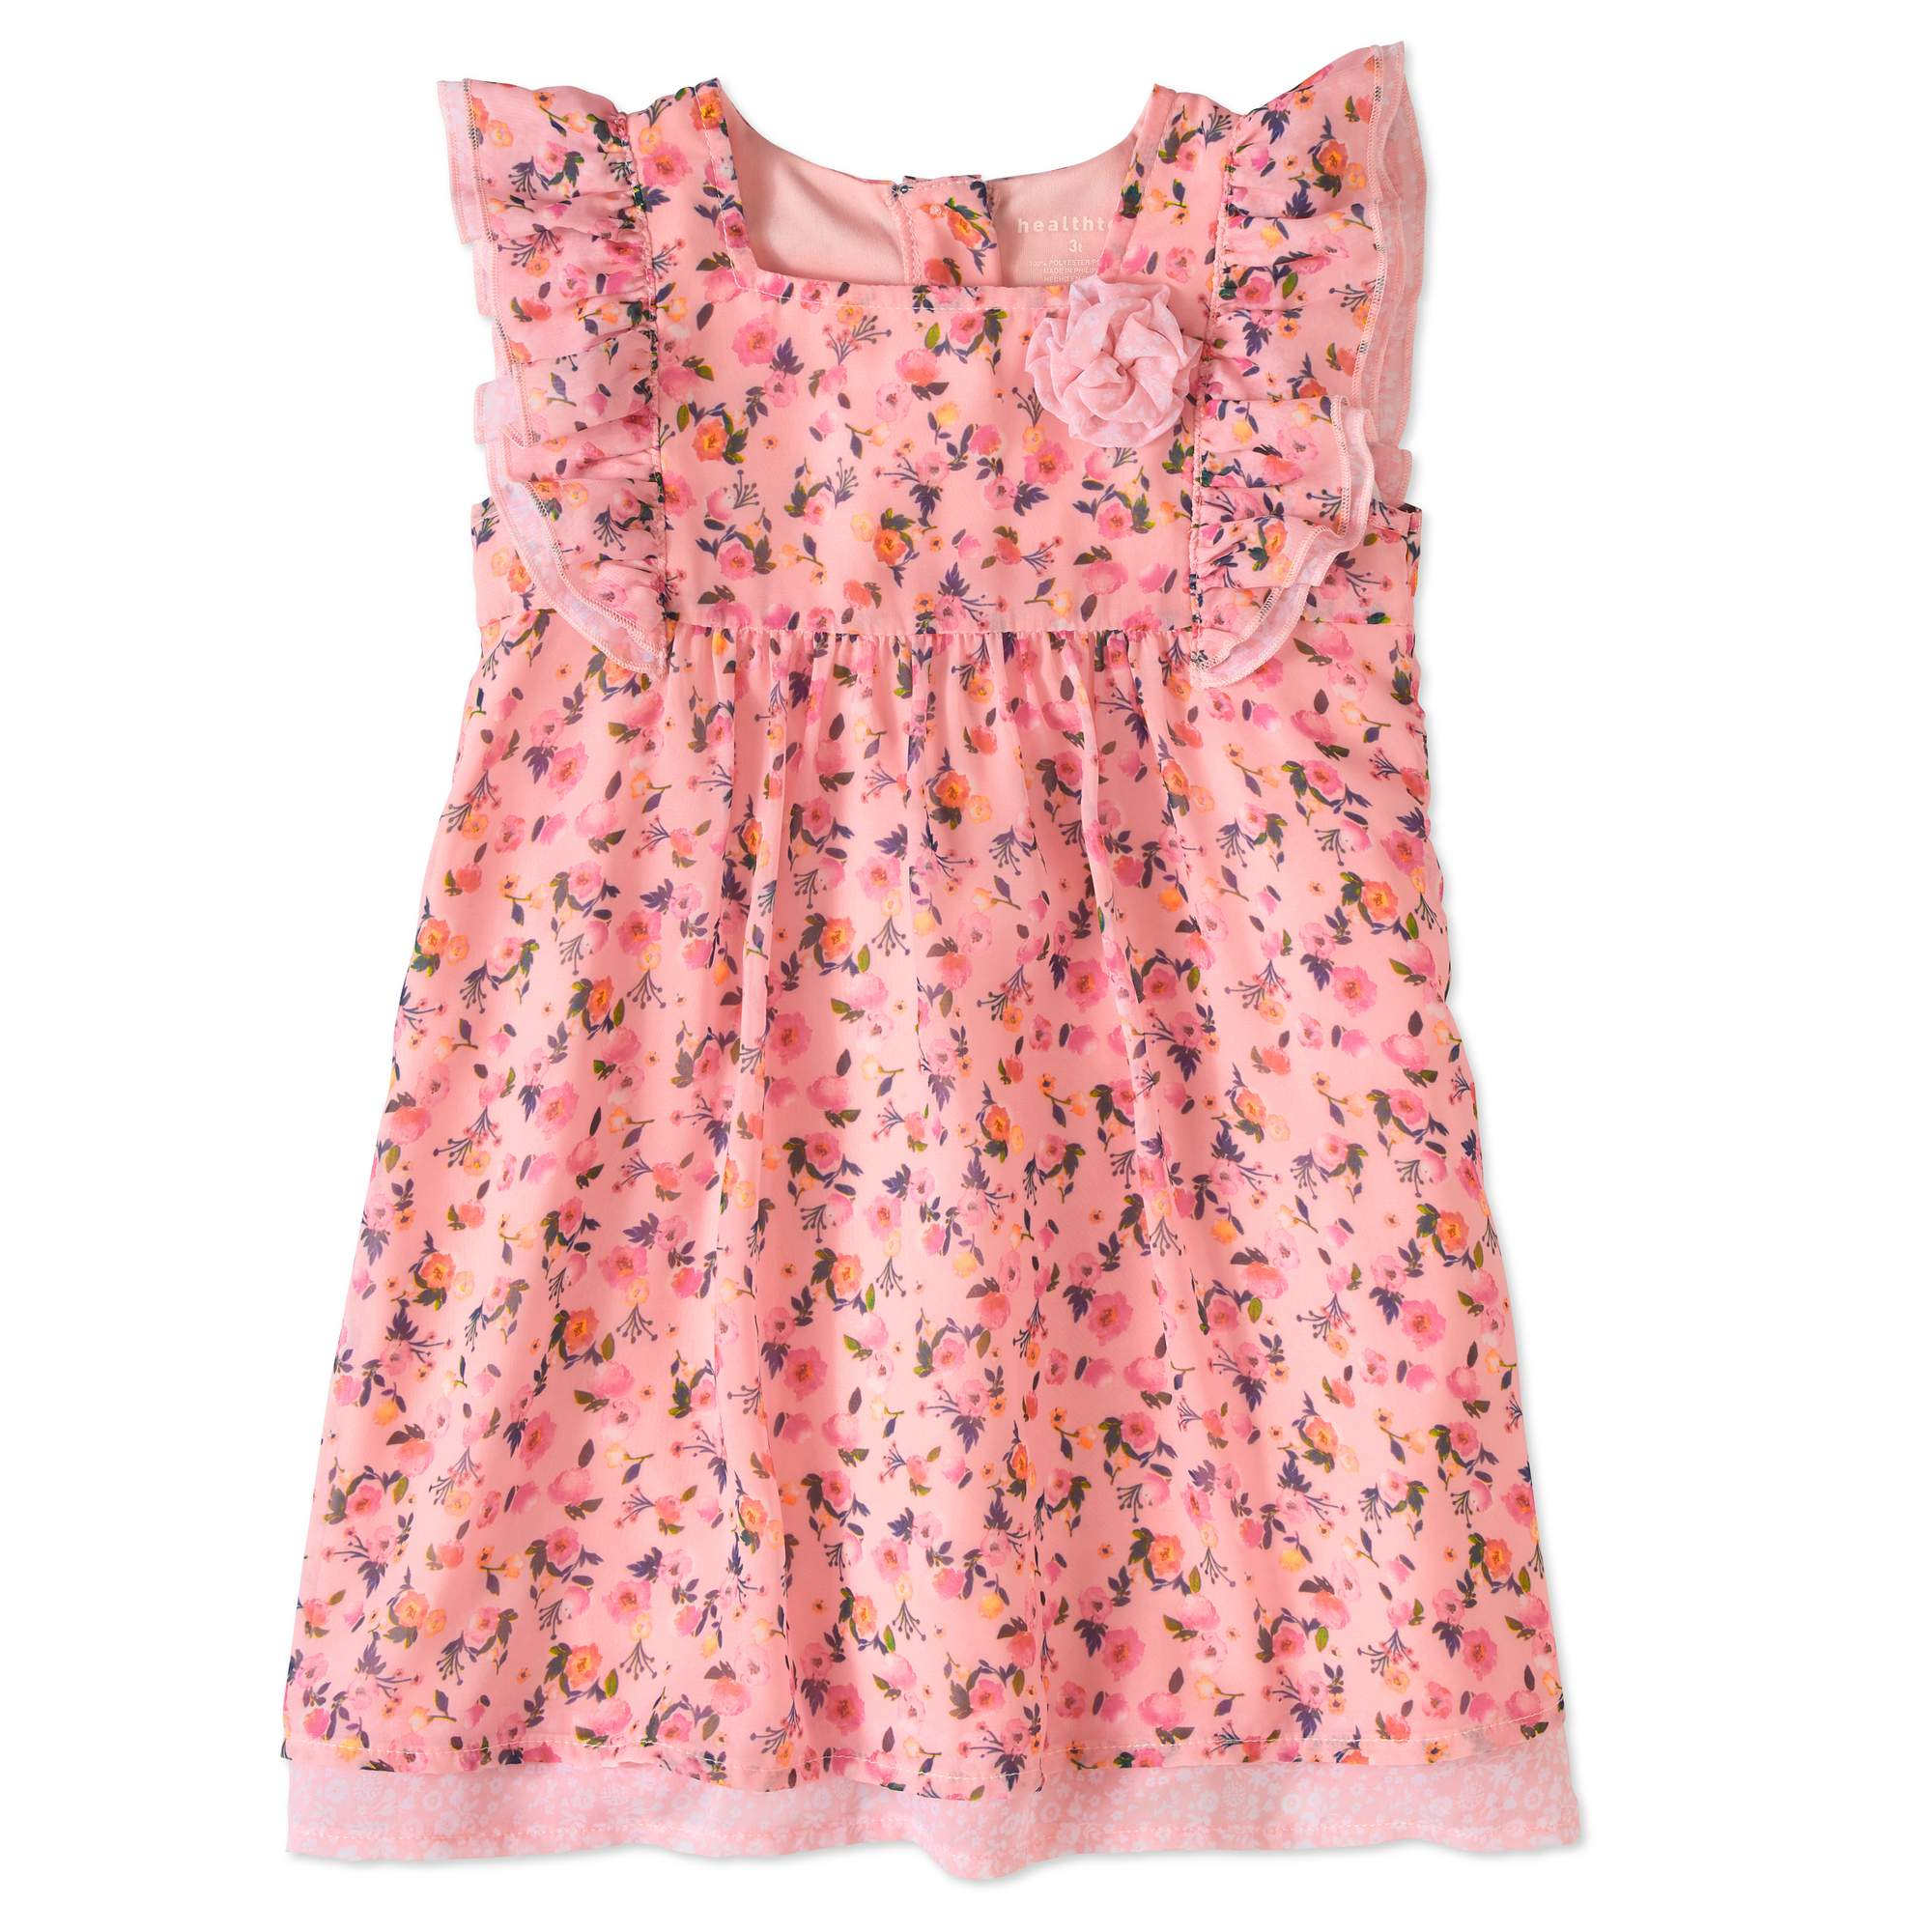 Healthtex Toddler Girls' Flutter Sleeve Baby Doll Dress